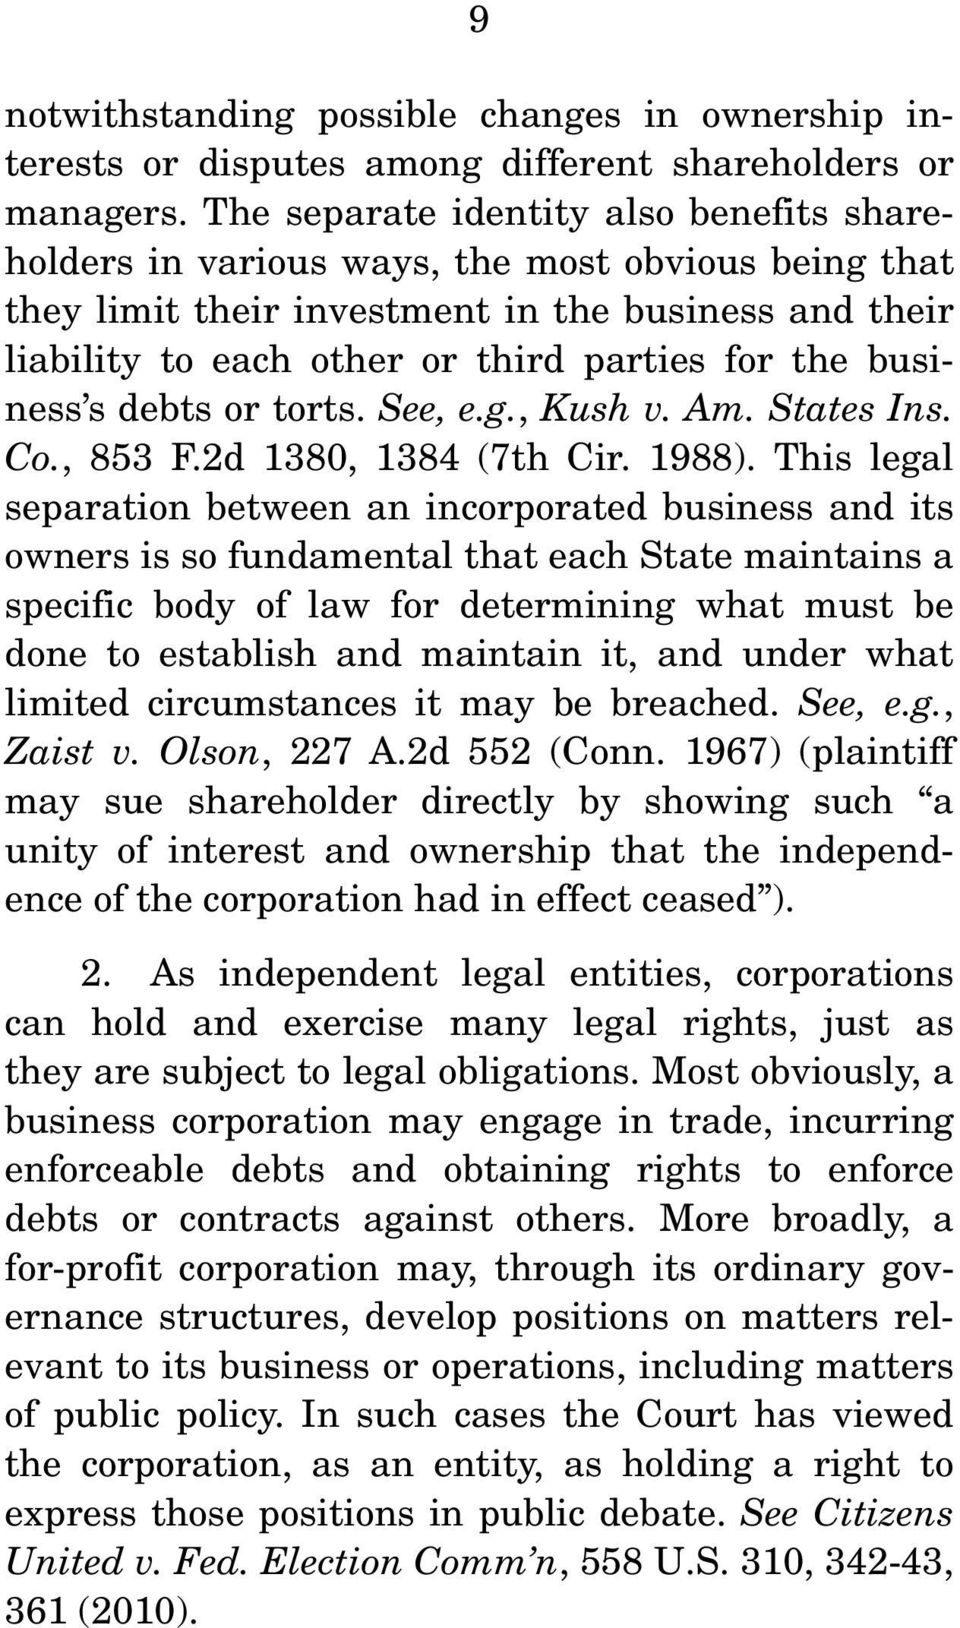 business s debts or torts. See, e.g., Kush v. Am. States Ins. Co., 853 F.2d 1380, 1384 (7th Cir. 1988).